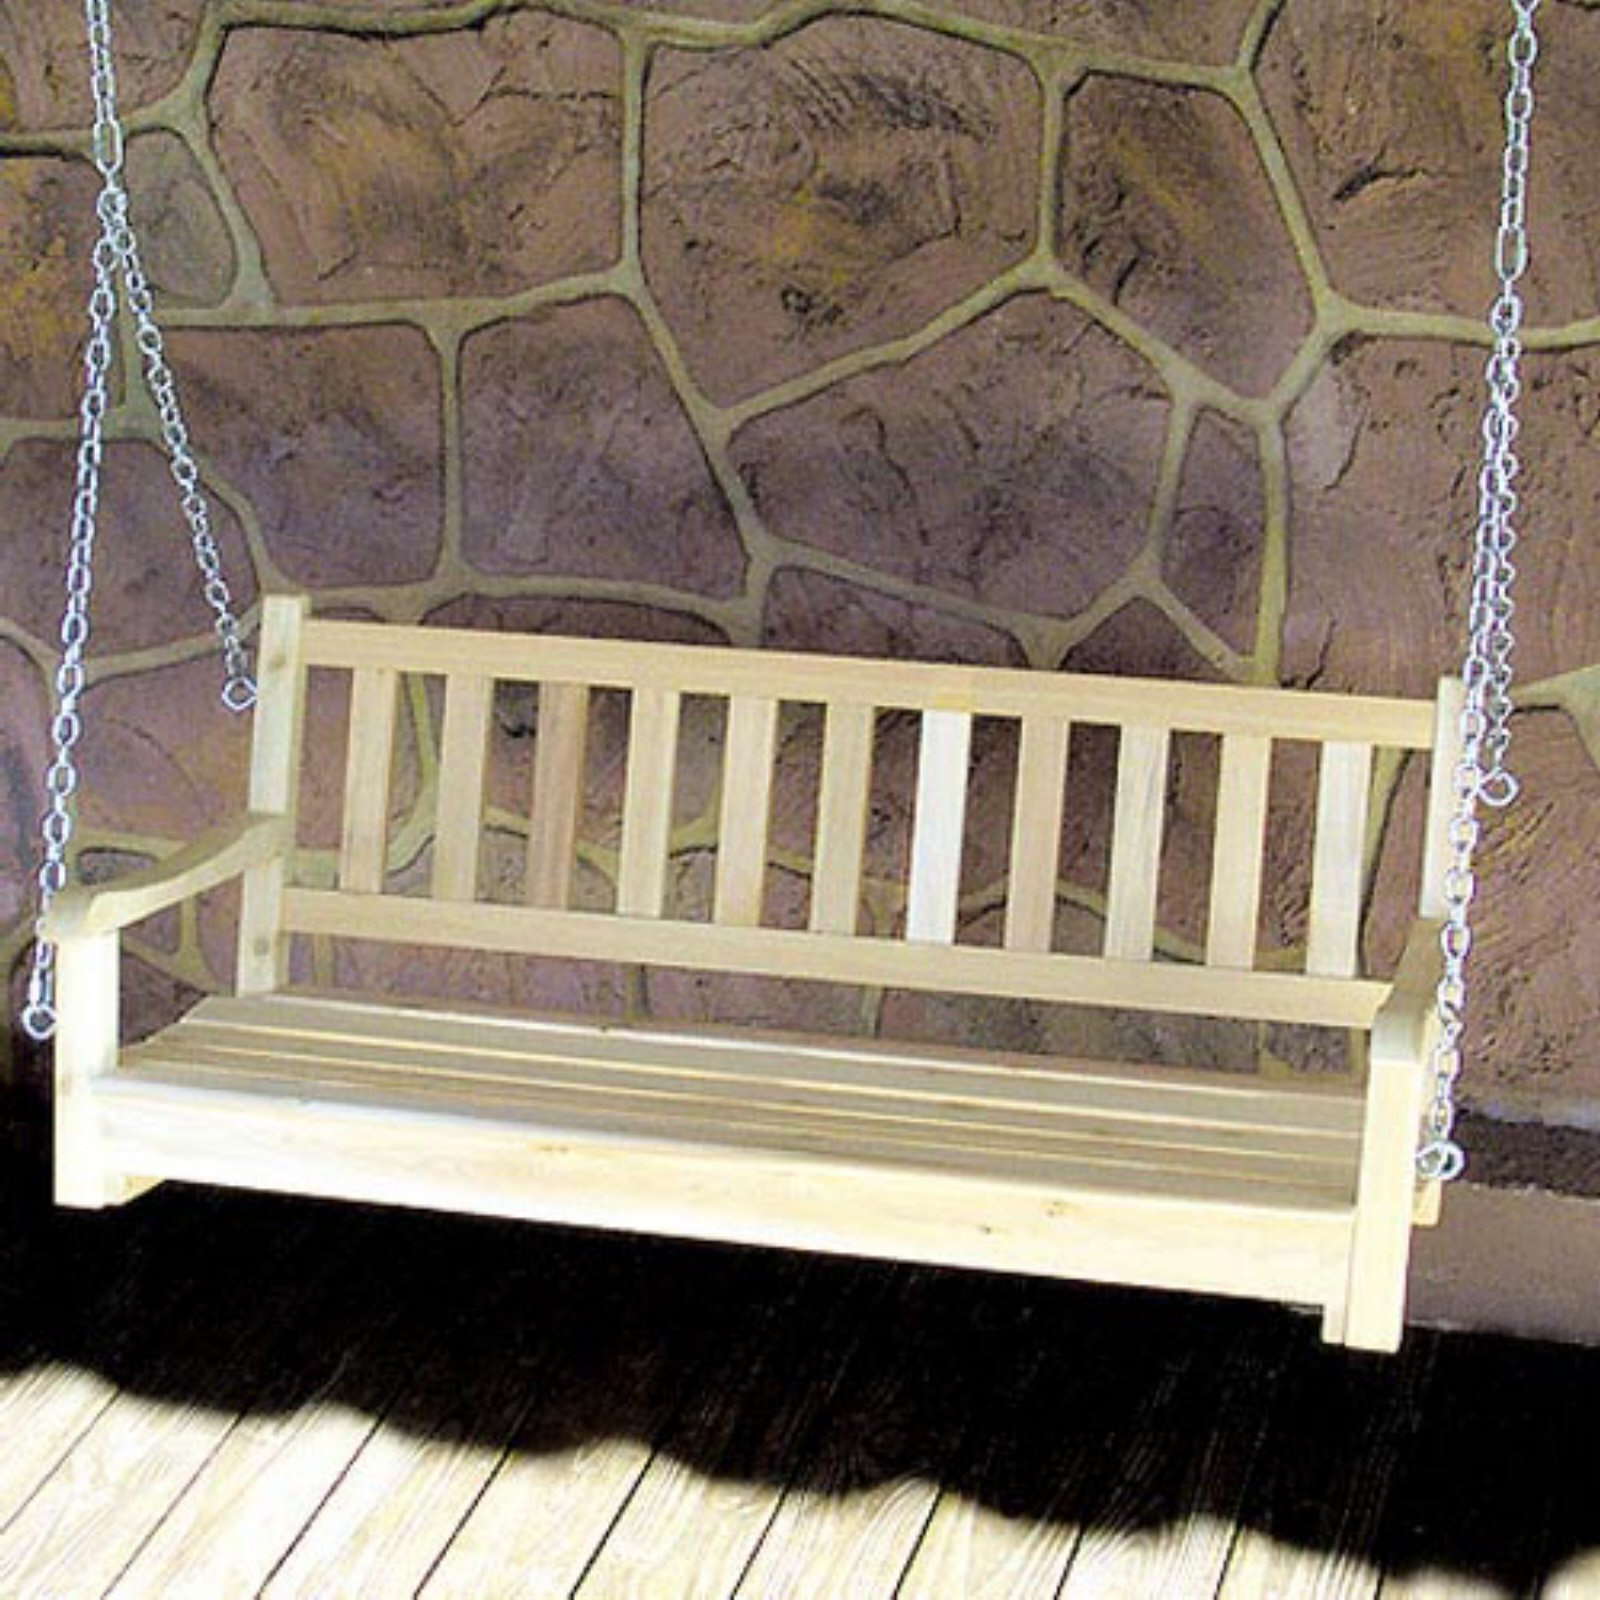 Widely Used Tidewater Workshop American Classic Porch Swing – Walmart Regarding Contoured Classic Porch Swings (View 25 of 25)